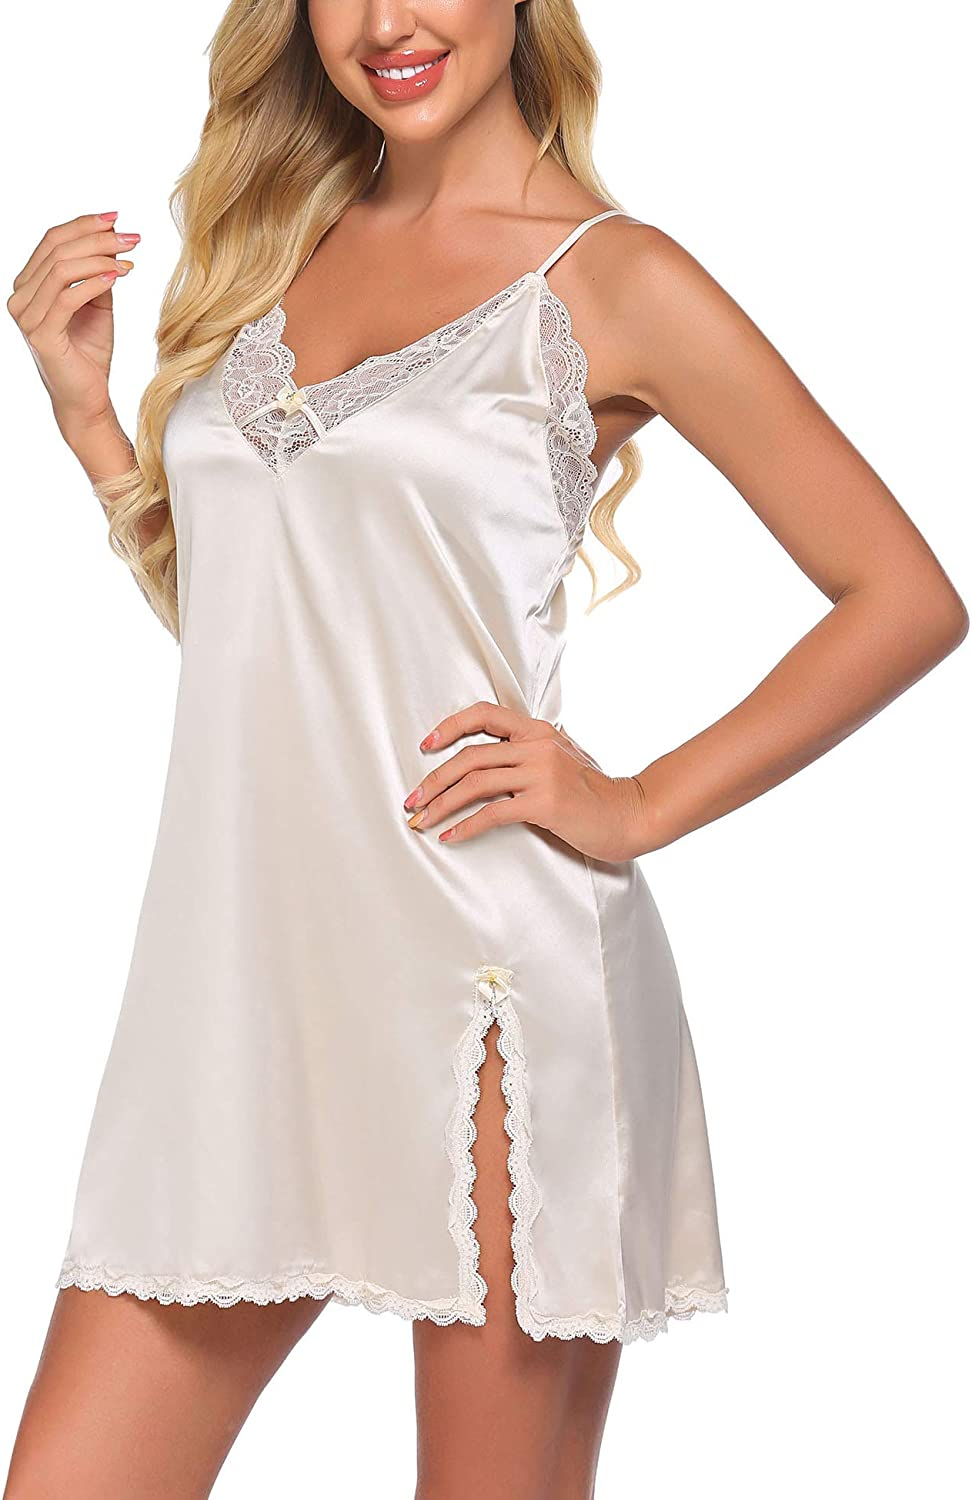 M Gorgeous satin nightie// Chemise S L XL